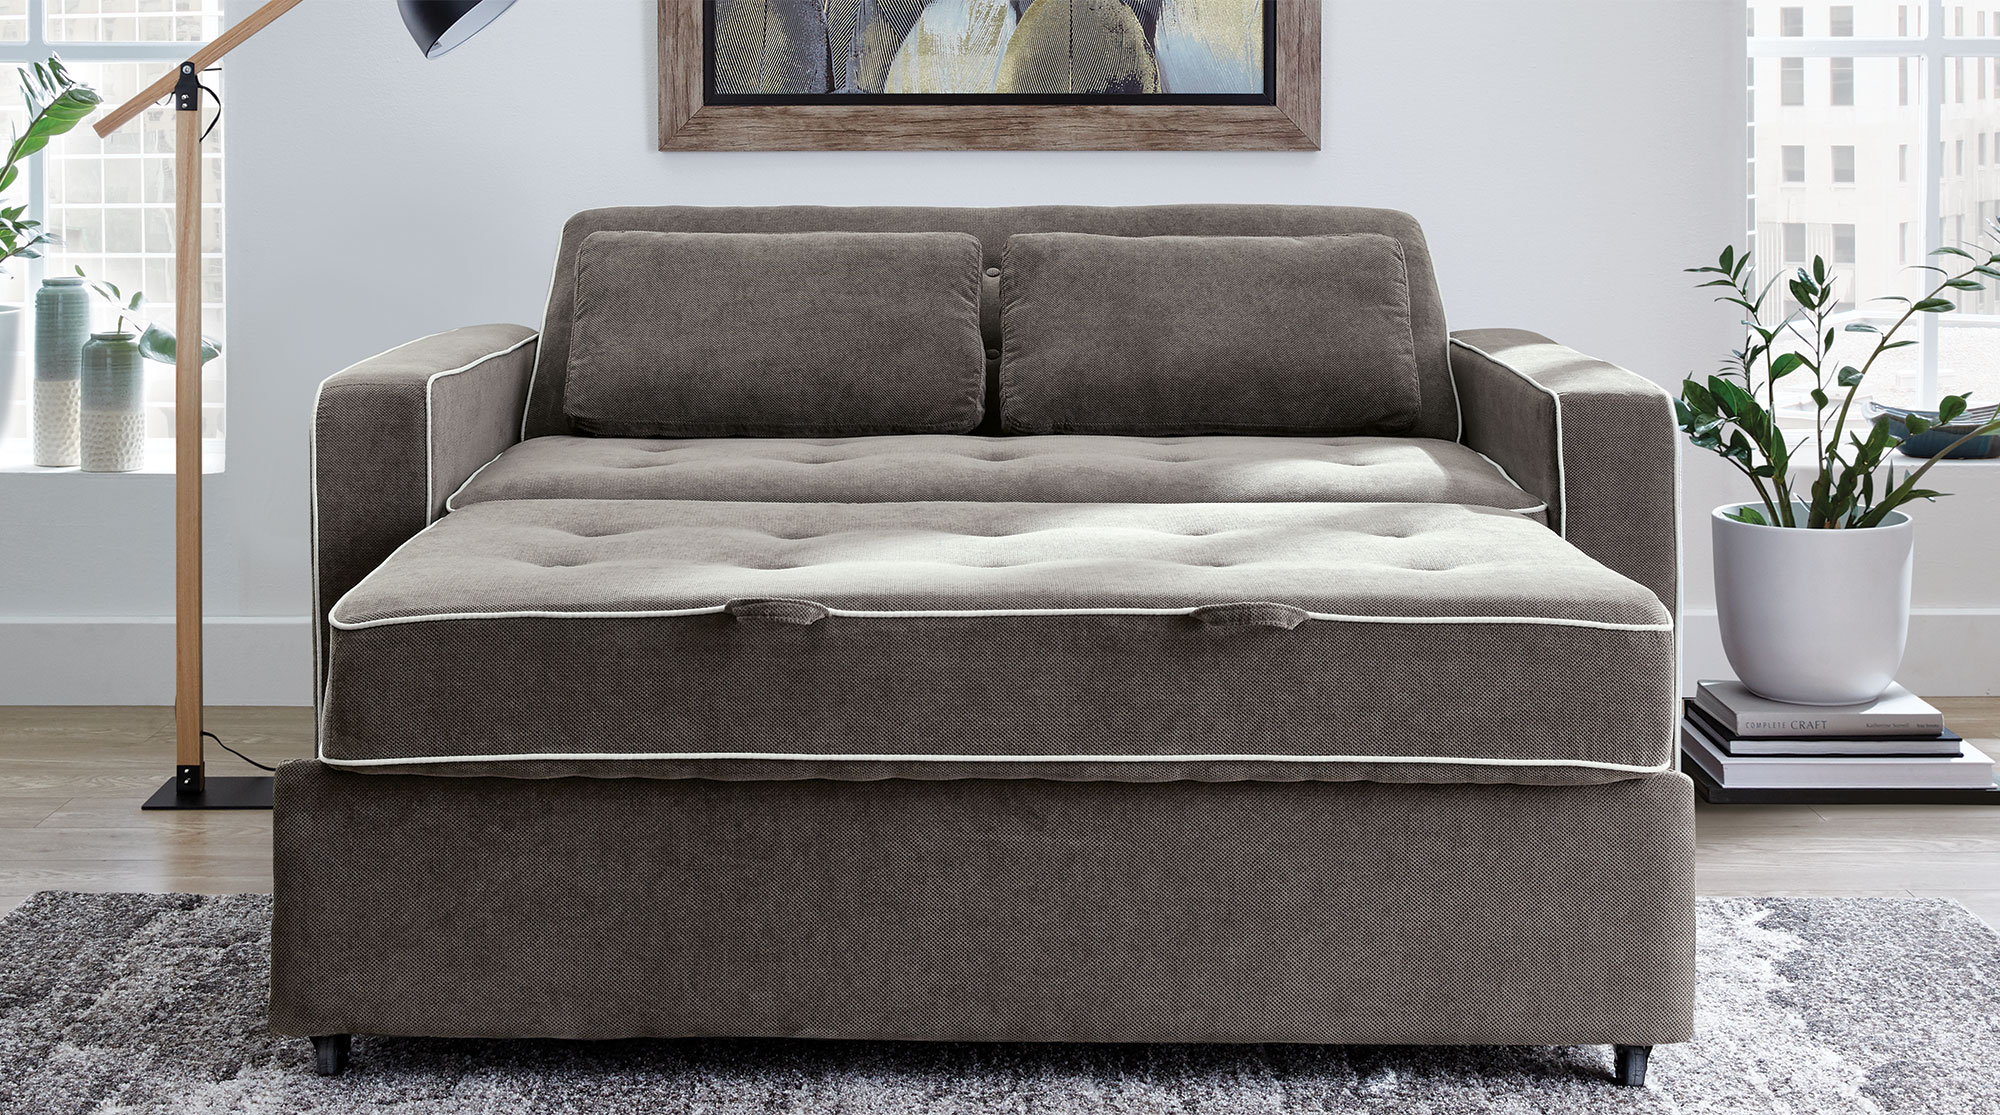 Augustine-sofabed-small-spaces-lounger